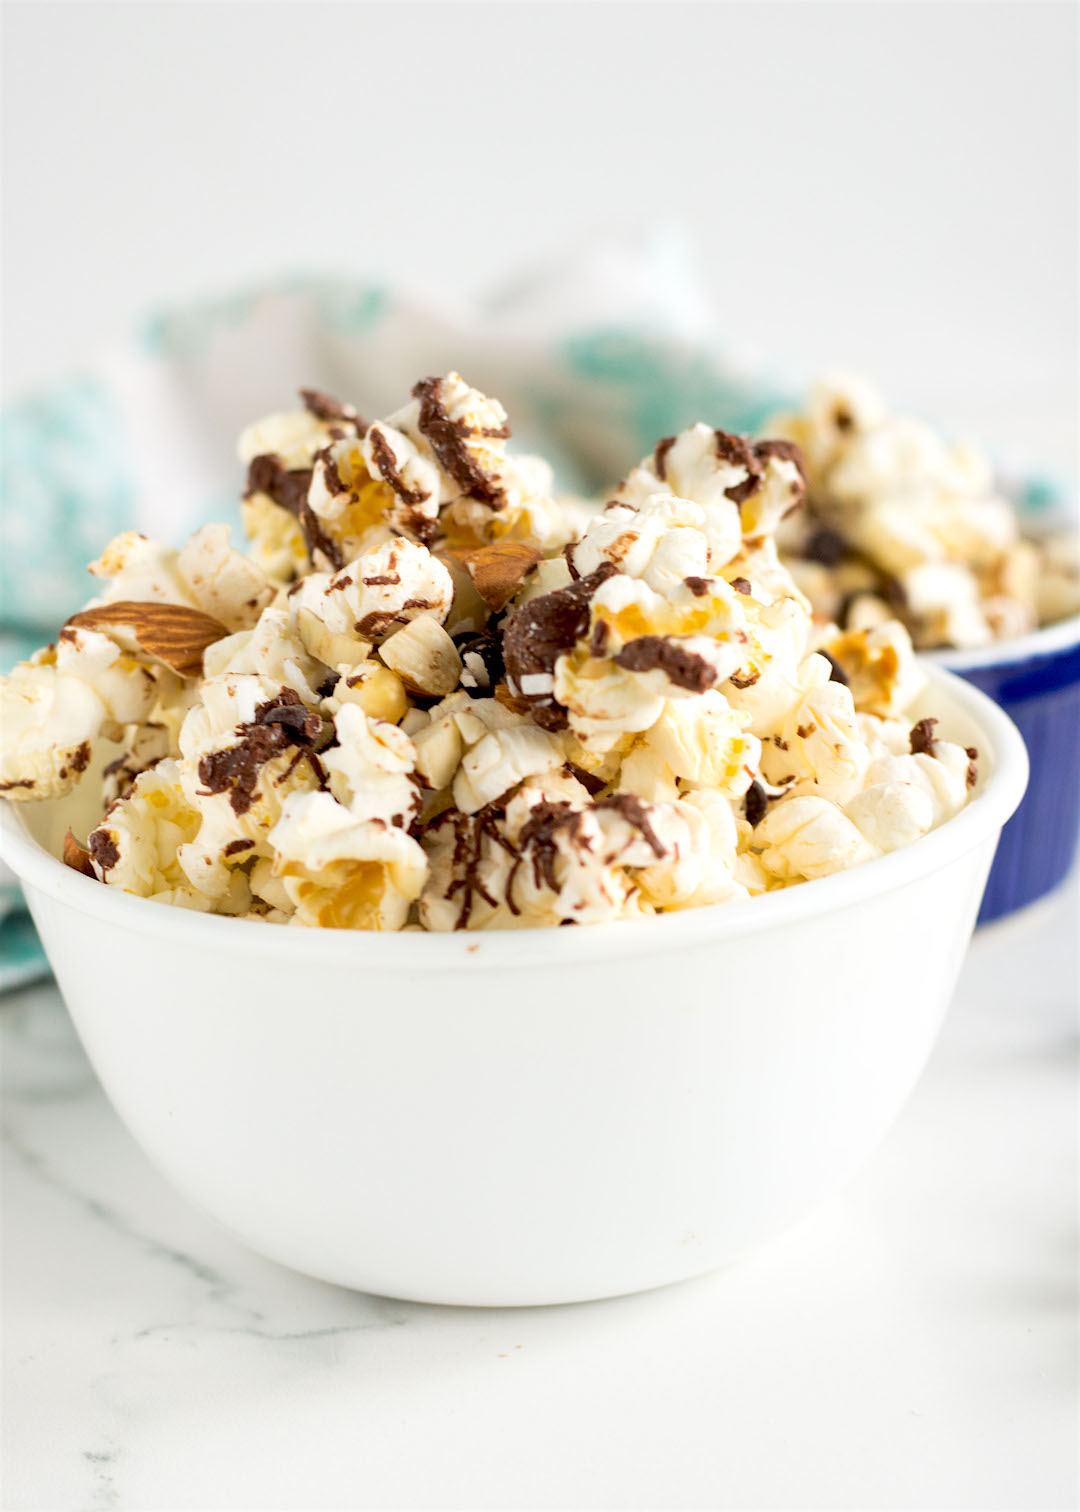 Light and fluffy homemade popcorn drizzled with dark chocolate and sprinkled with sea salt and mix together with nuts, more chocolate and coconut. This Salted Chocolate Popcorn Trail Mix is easy to make, gluten free, dairy free and vegan possible and it's a seriously good snack.